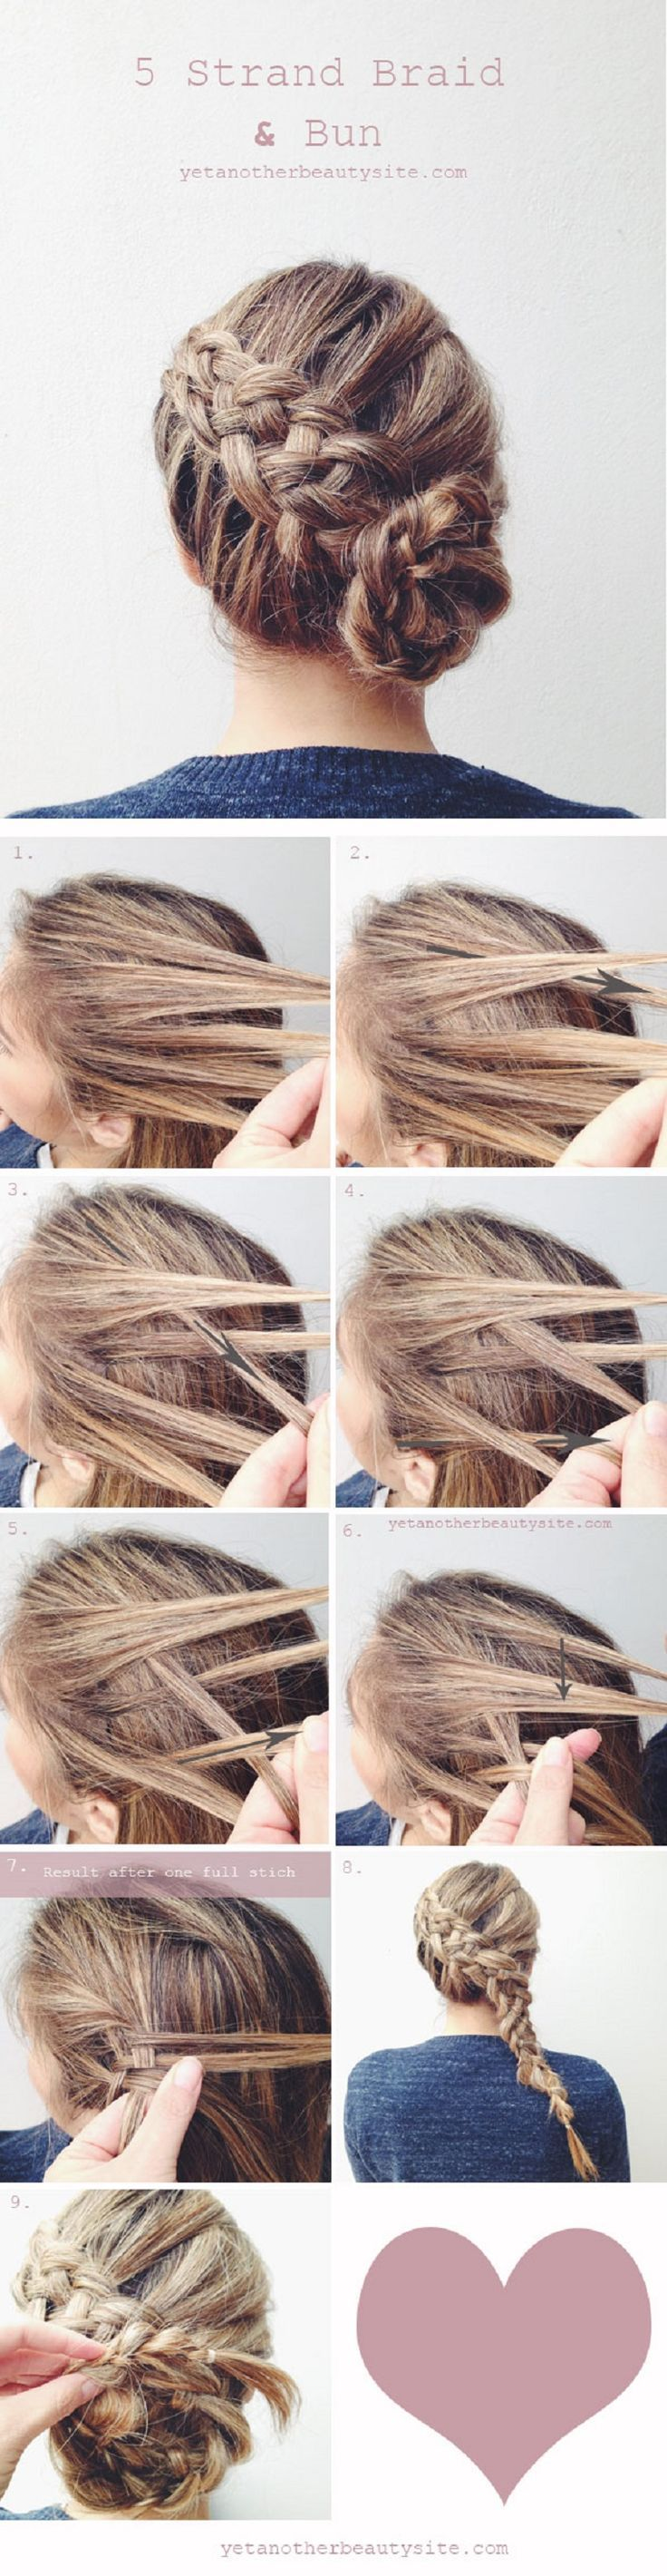 5 Strand Braid Bun - 16 Heatless DIY Hairstyles To Get You Through The Summer GleamItUp